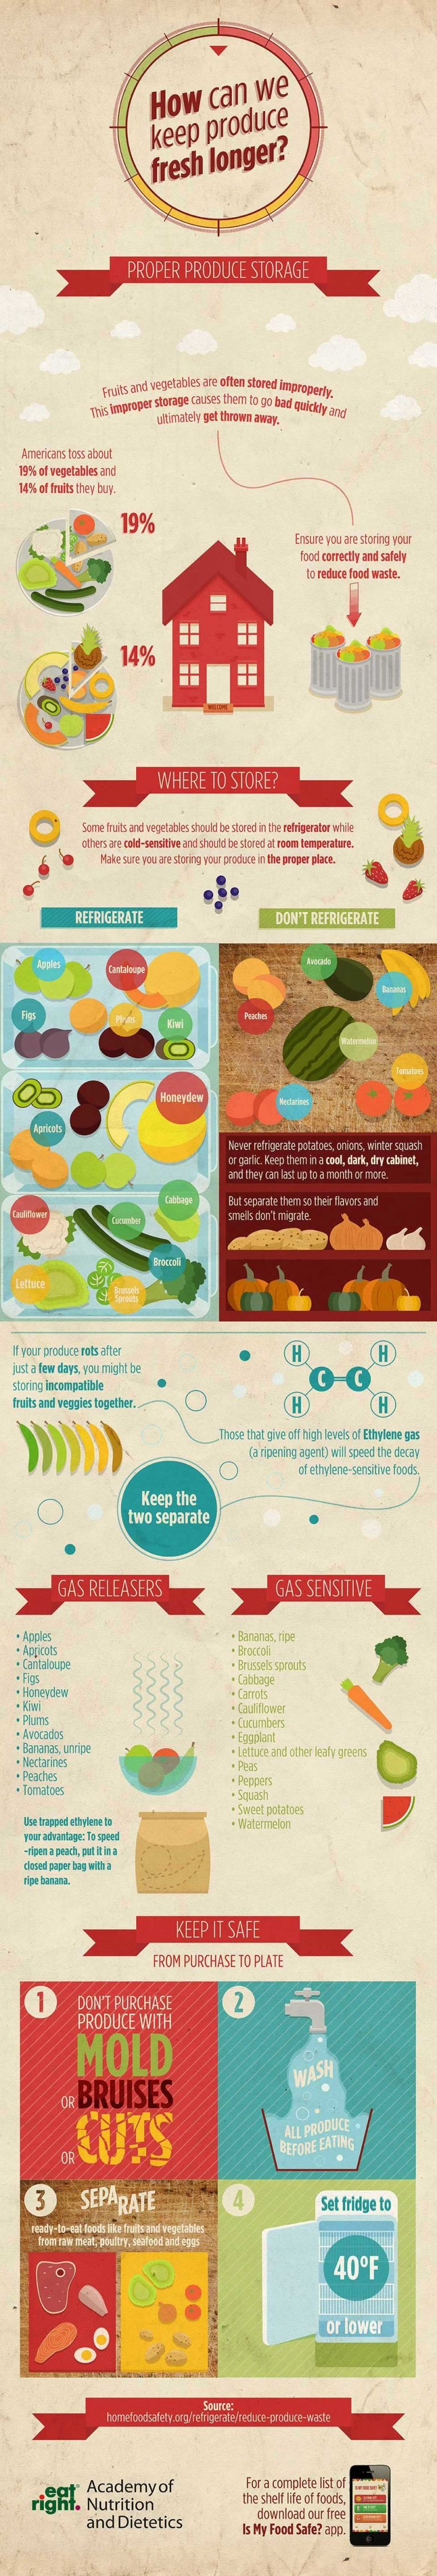 This infographic is from the Academy of Nutrition and Dietetics.